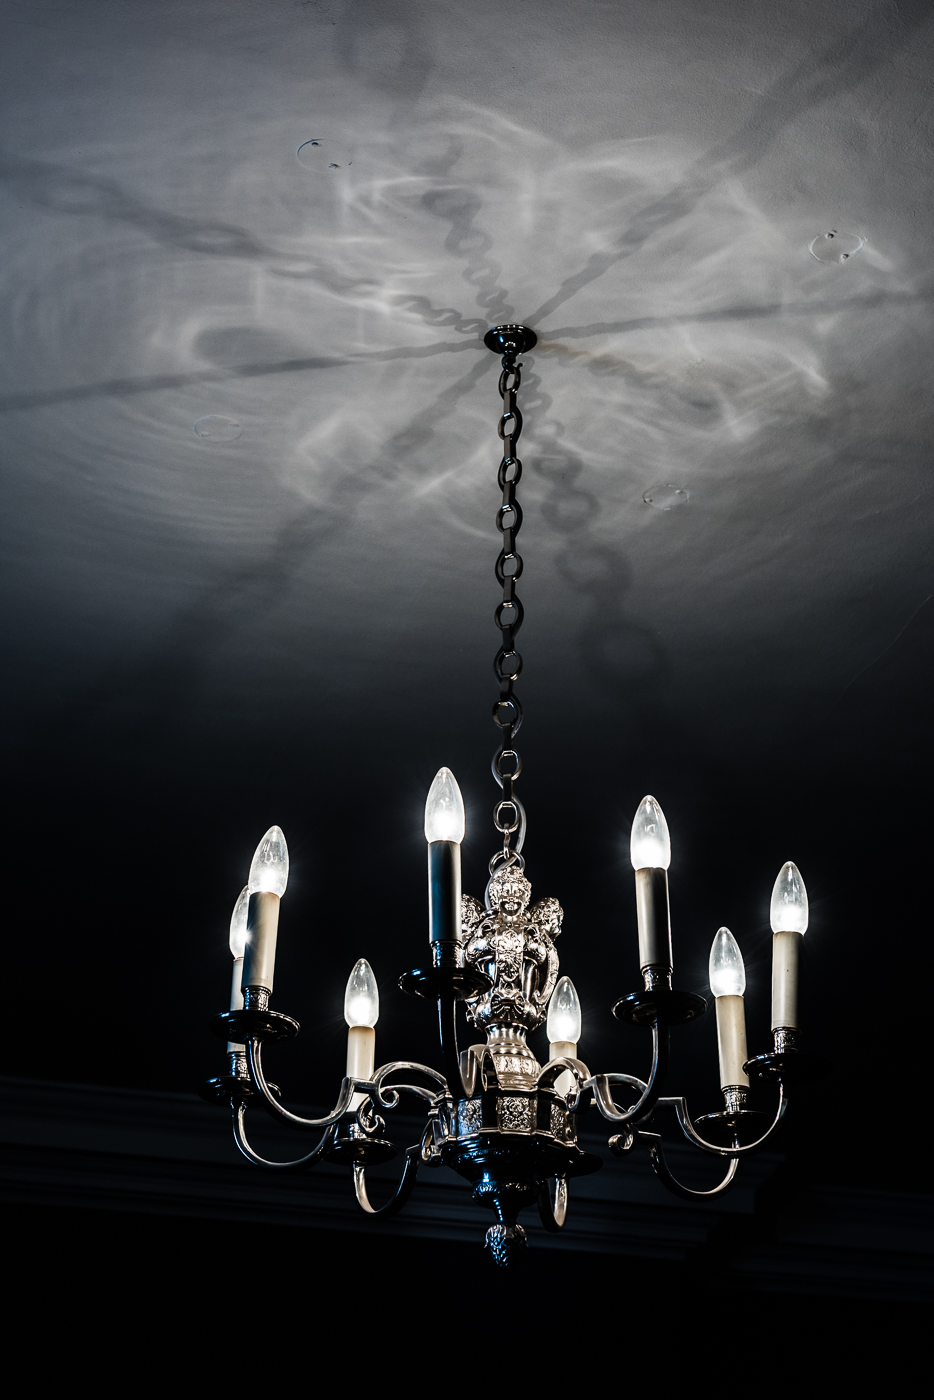 Chandelier and shadow